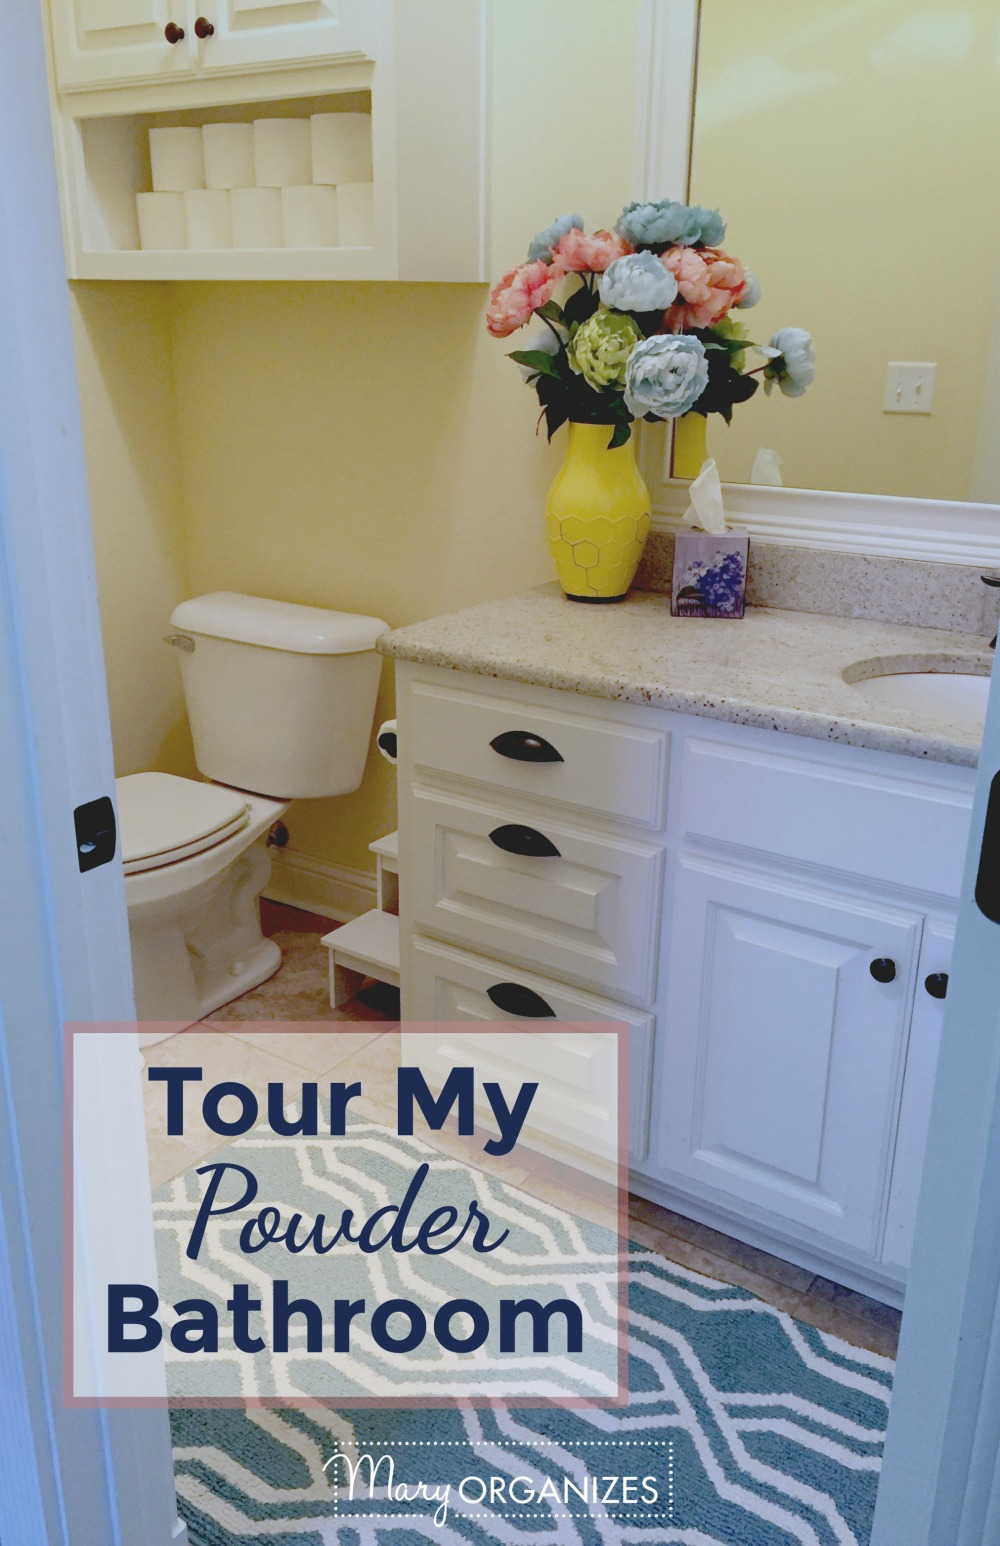 Powder Bathroom Tour - v